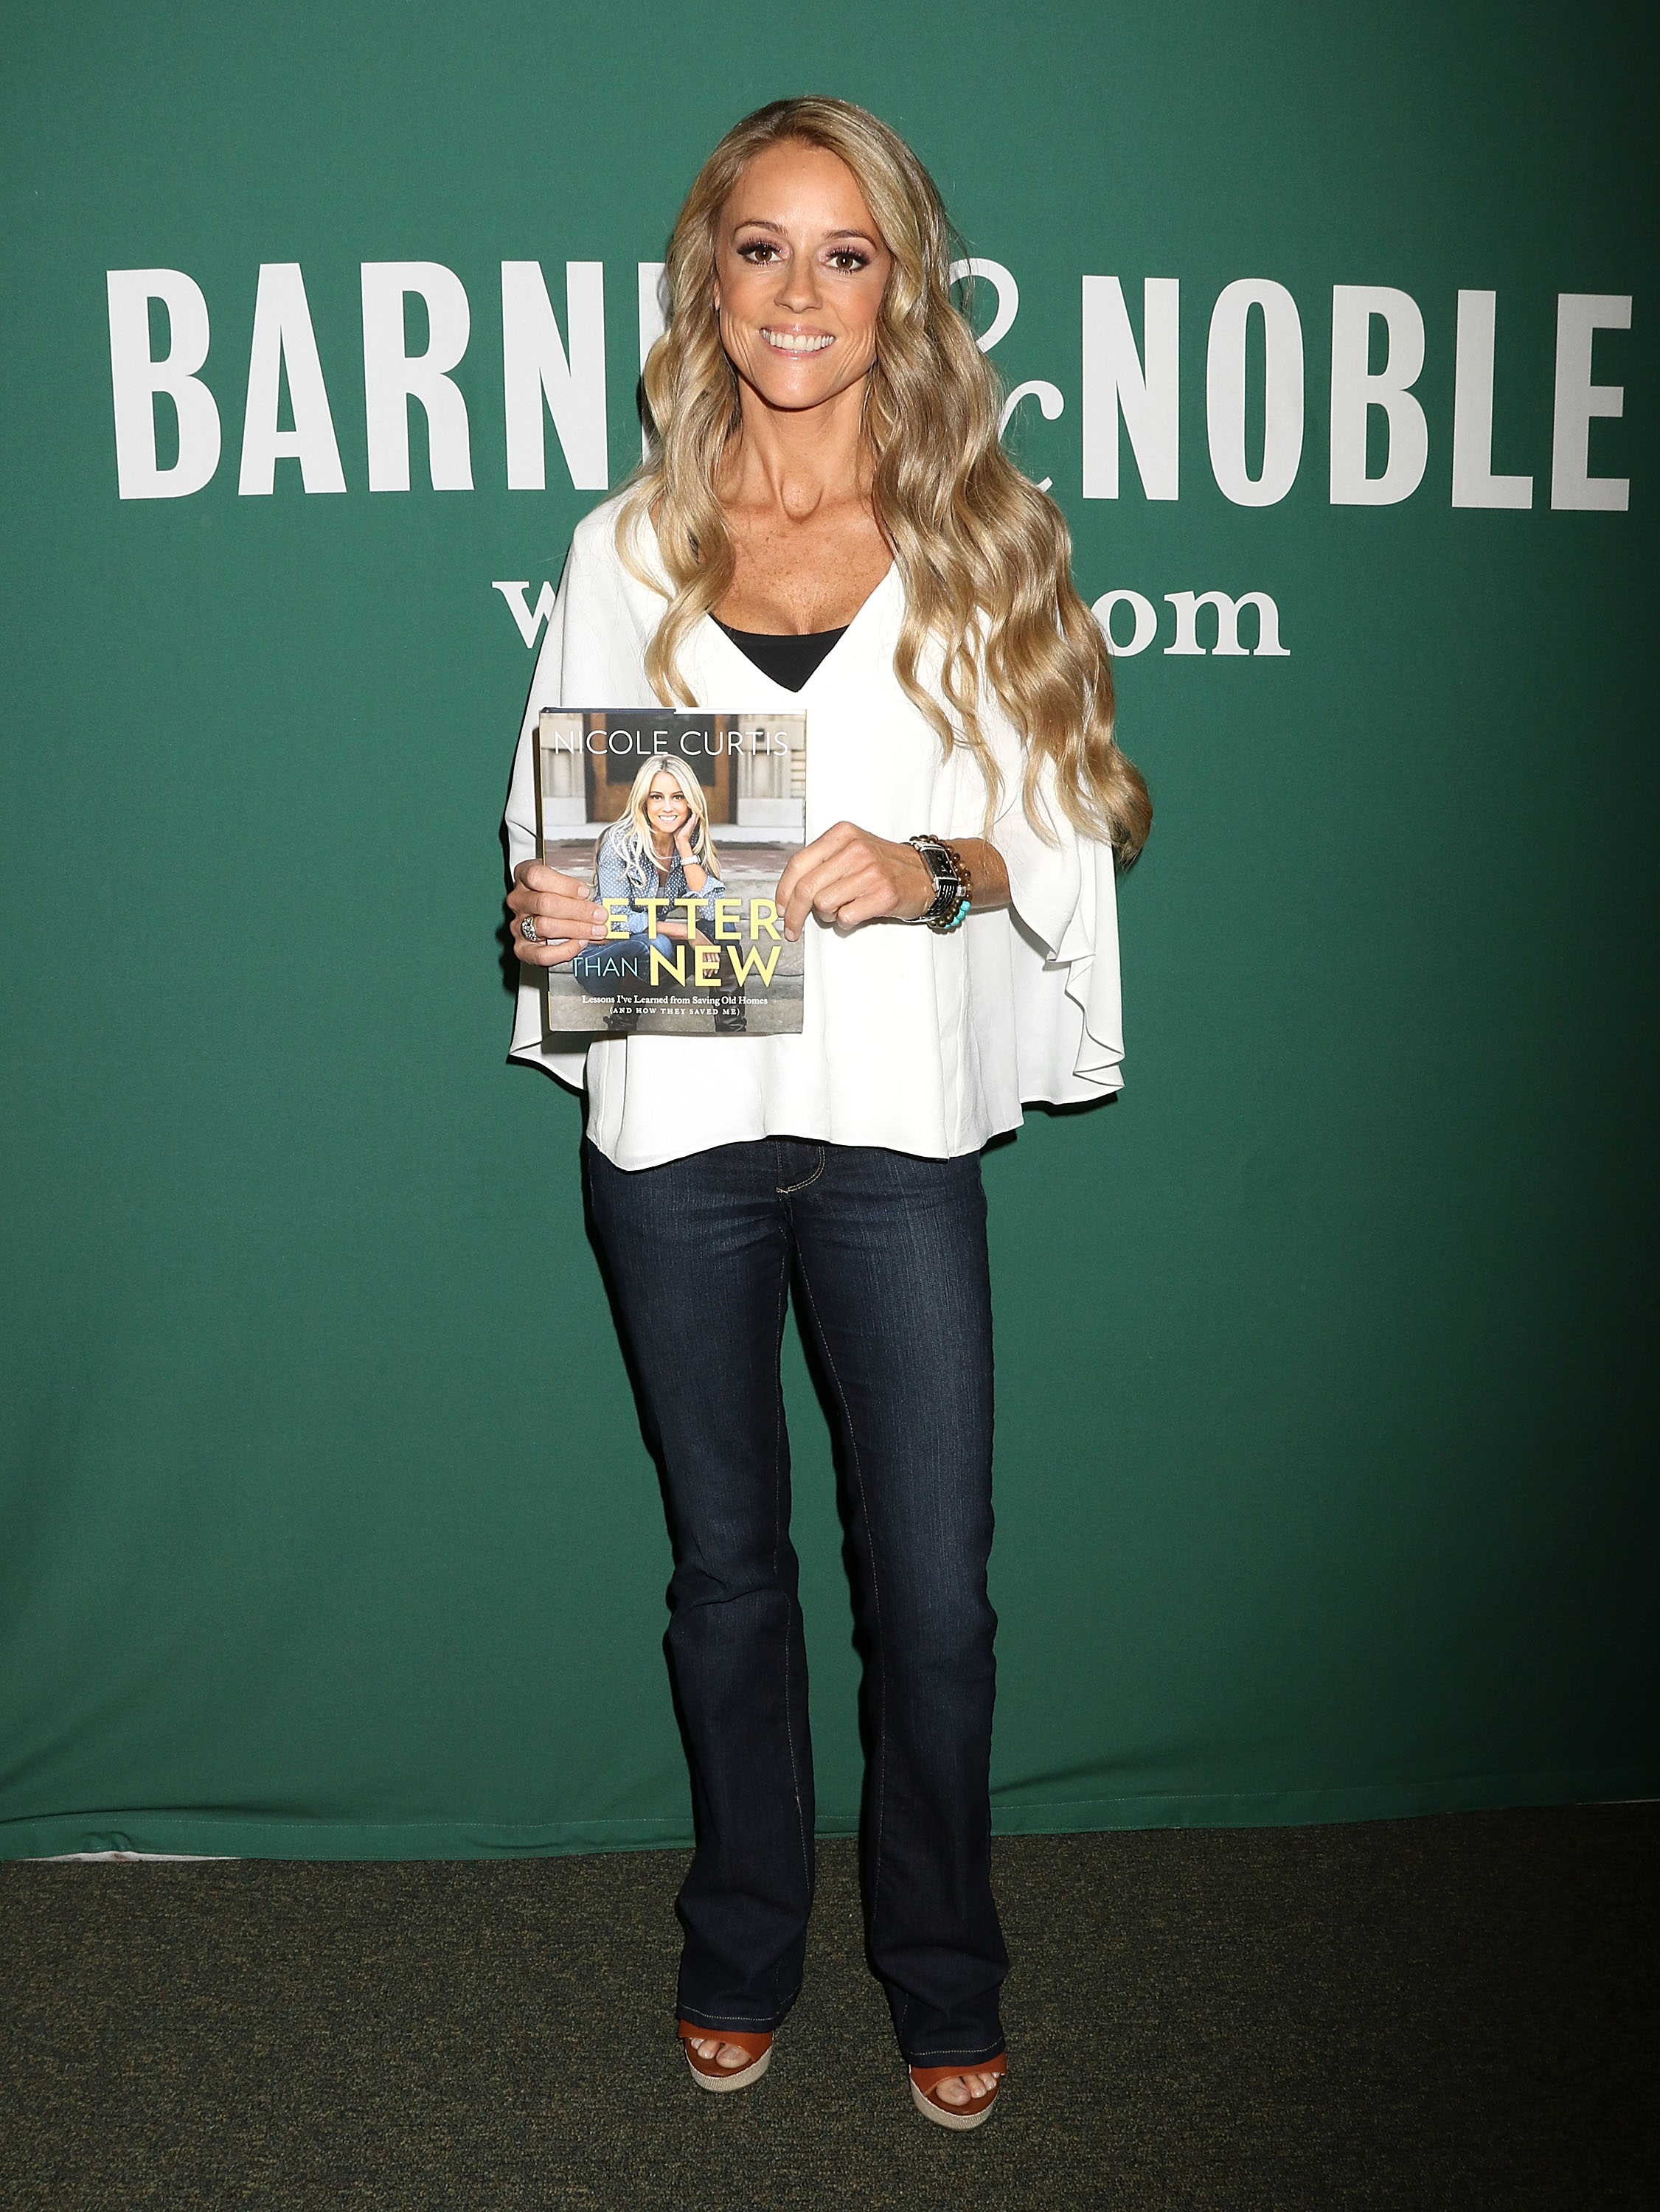 """Nicole Curtis signs copies of her new book """"Better Than New: Lessons I've Learned from Saving Old Homes (and How They Saved Me)"""" at Barnes & Noble Union Square on October 18, 2016 